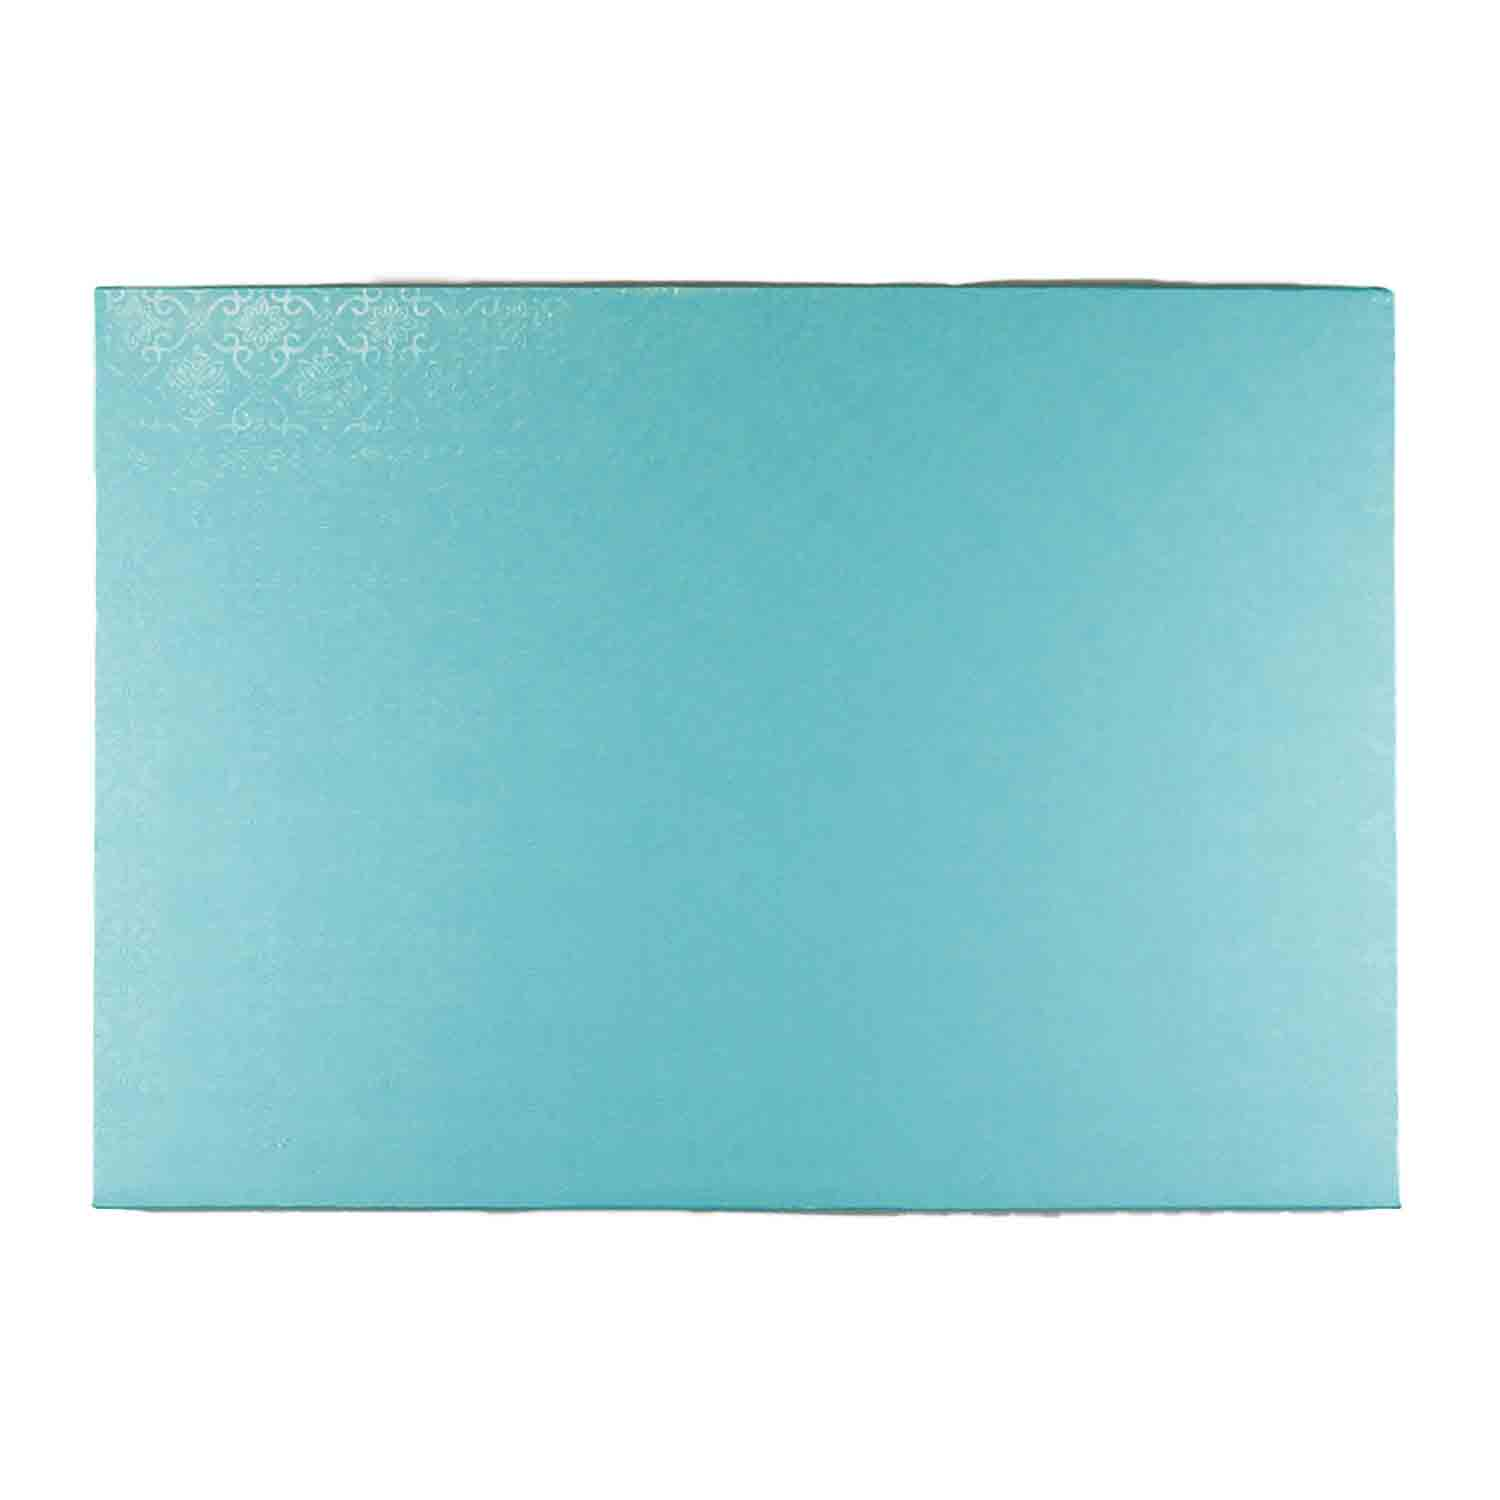 "14"" x 19"" Rectangle Tahiti Blue Foil Half Sheet Cake Drum"